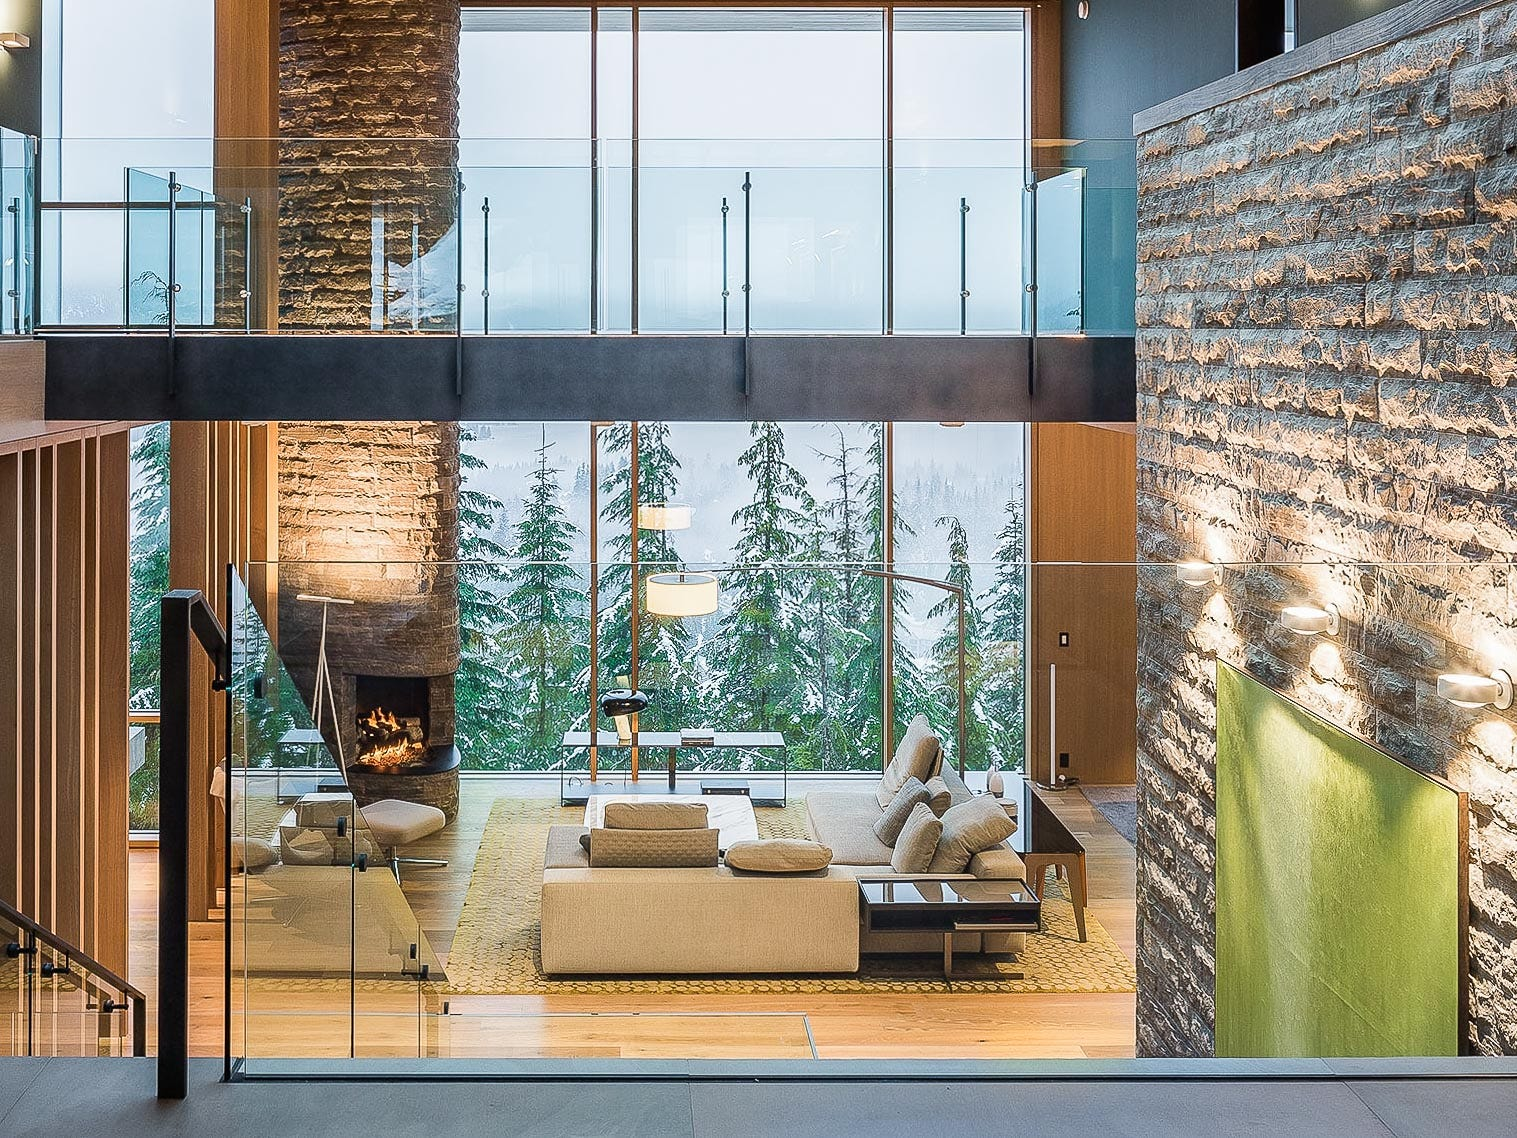 This six-bedroom property in Whistler, Canada, sleeps 14 and rents for  $7,749 - $11,624 a night.